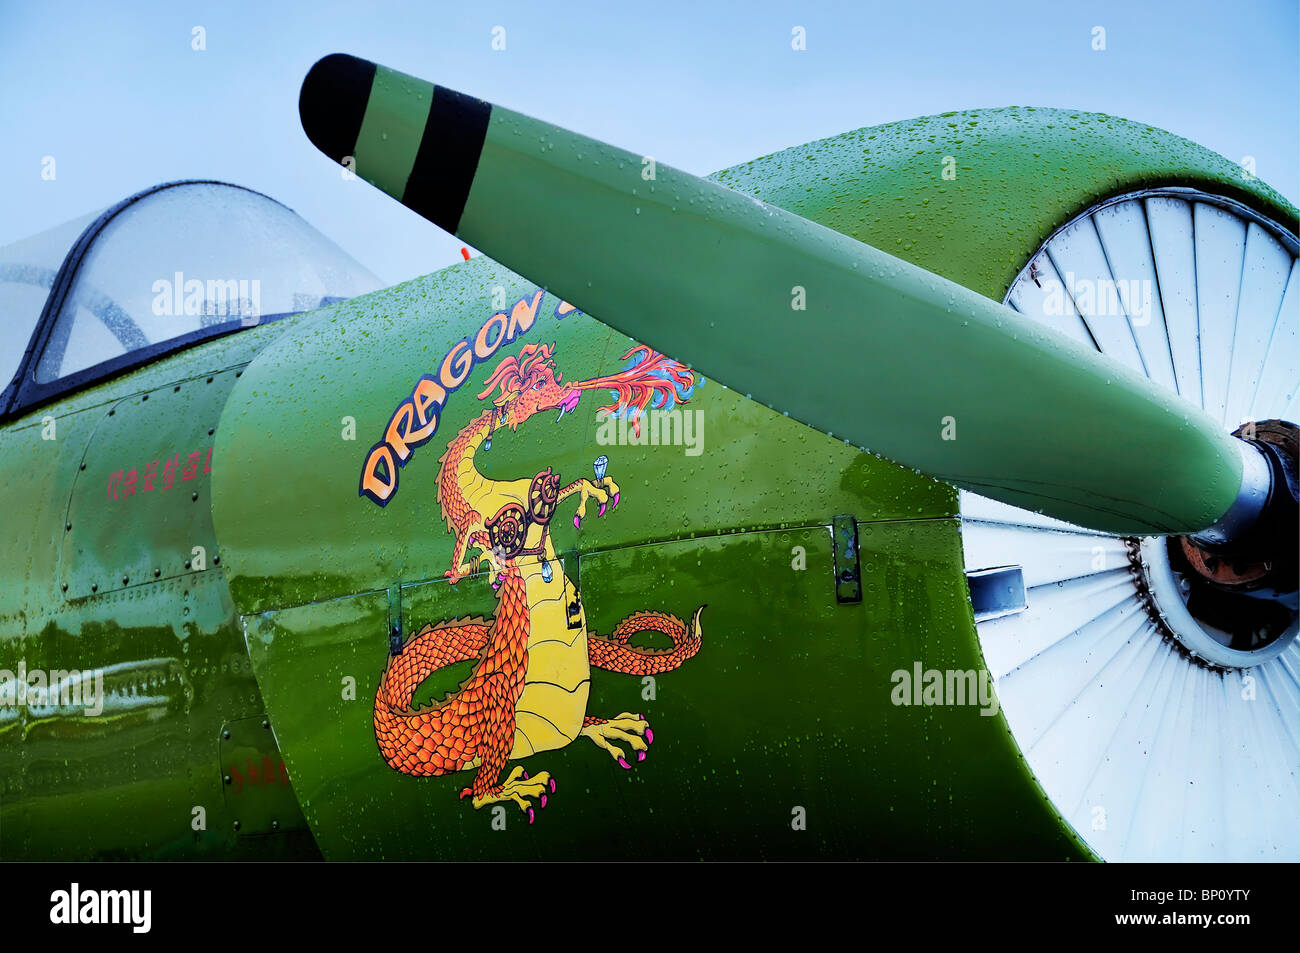 Close up of a Nanchang CJ-6A warbird at the Olympic Airshow in Tumwater, Washington. - Stock Image